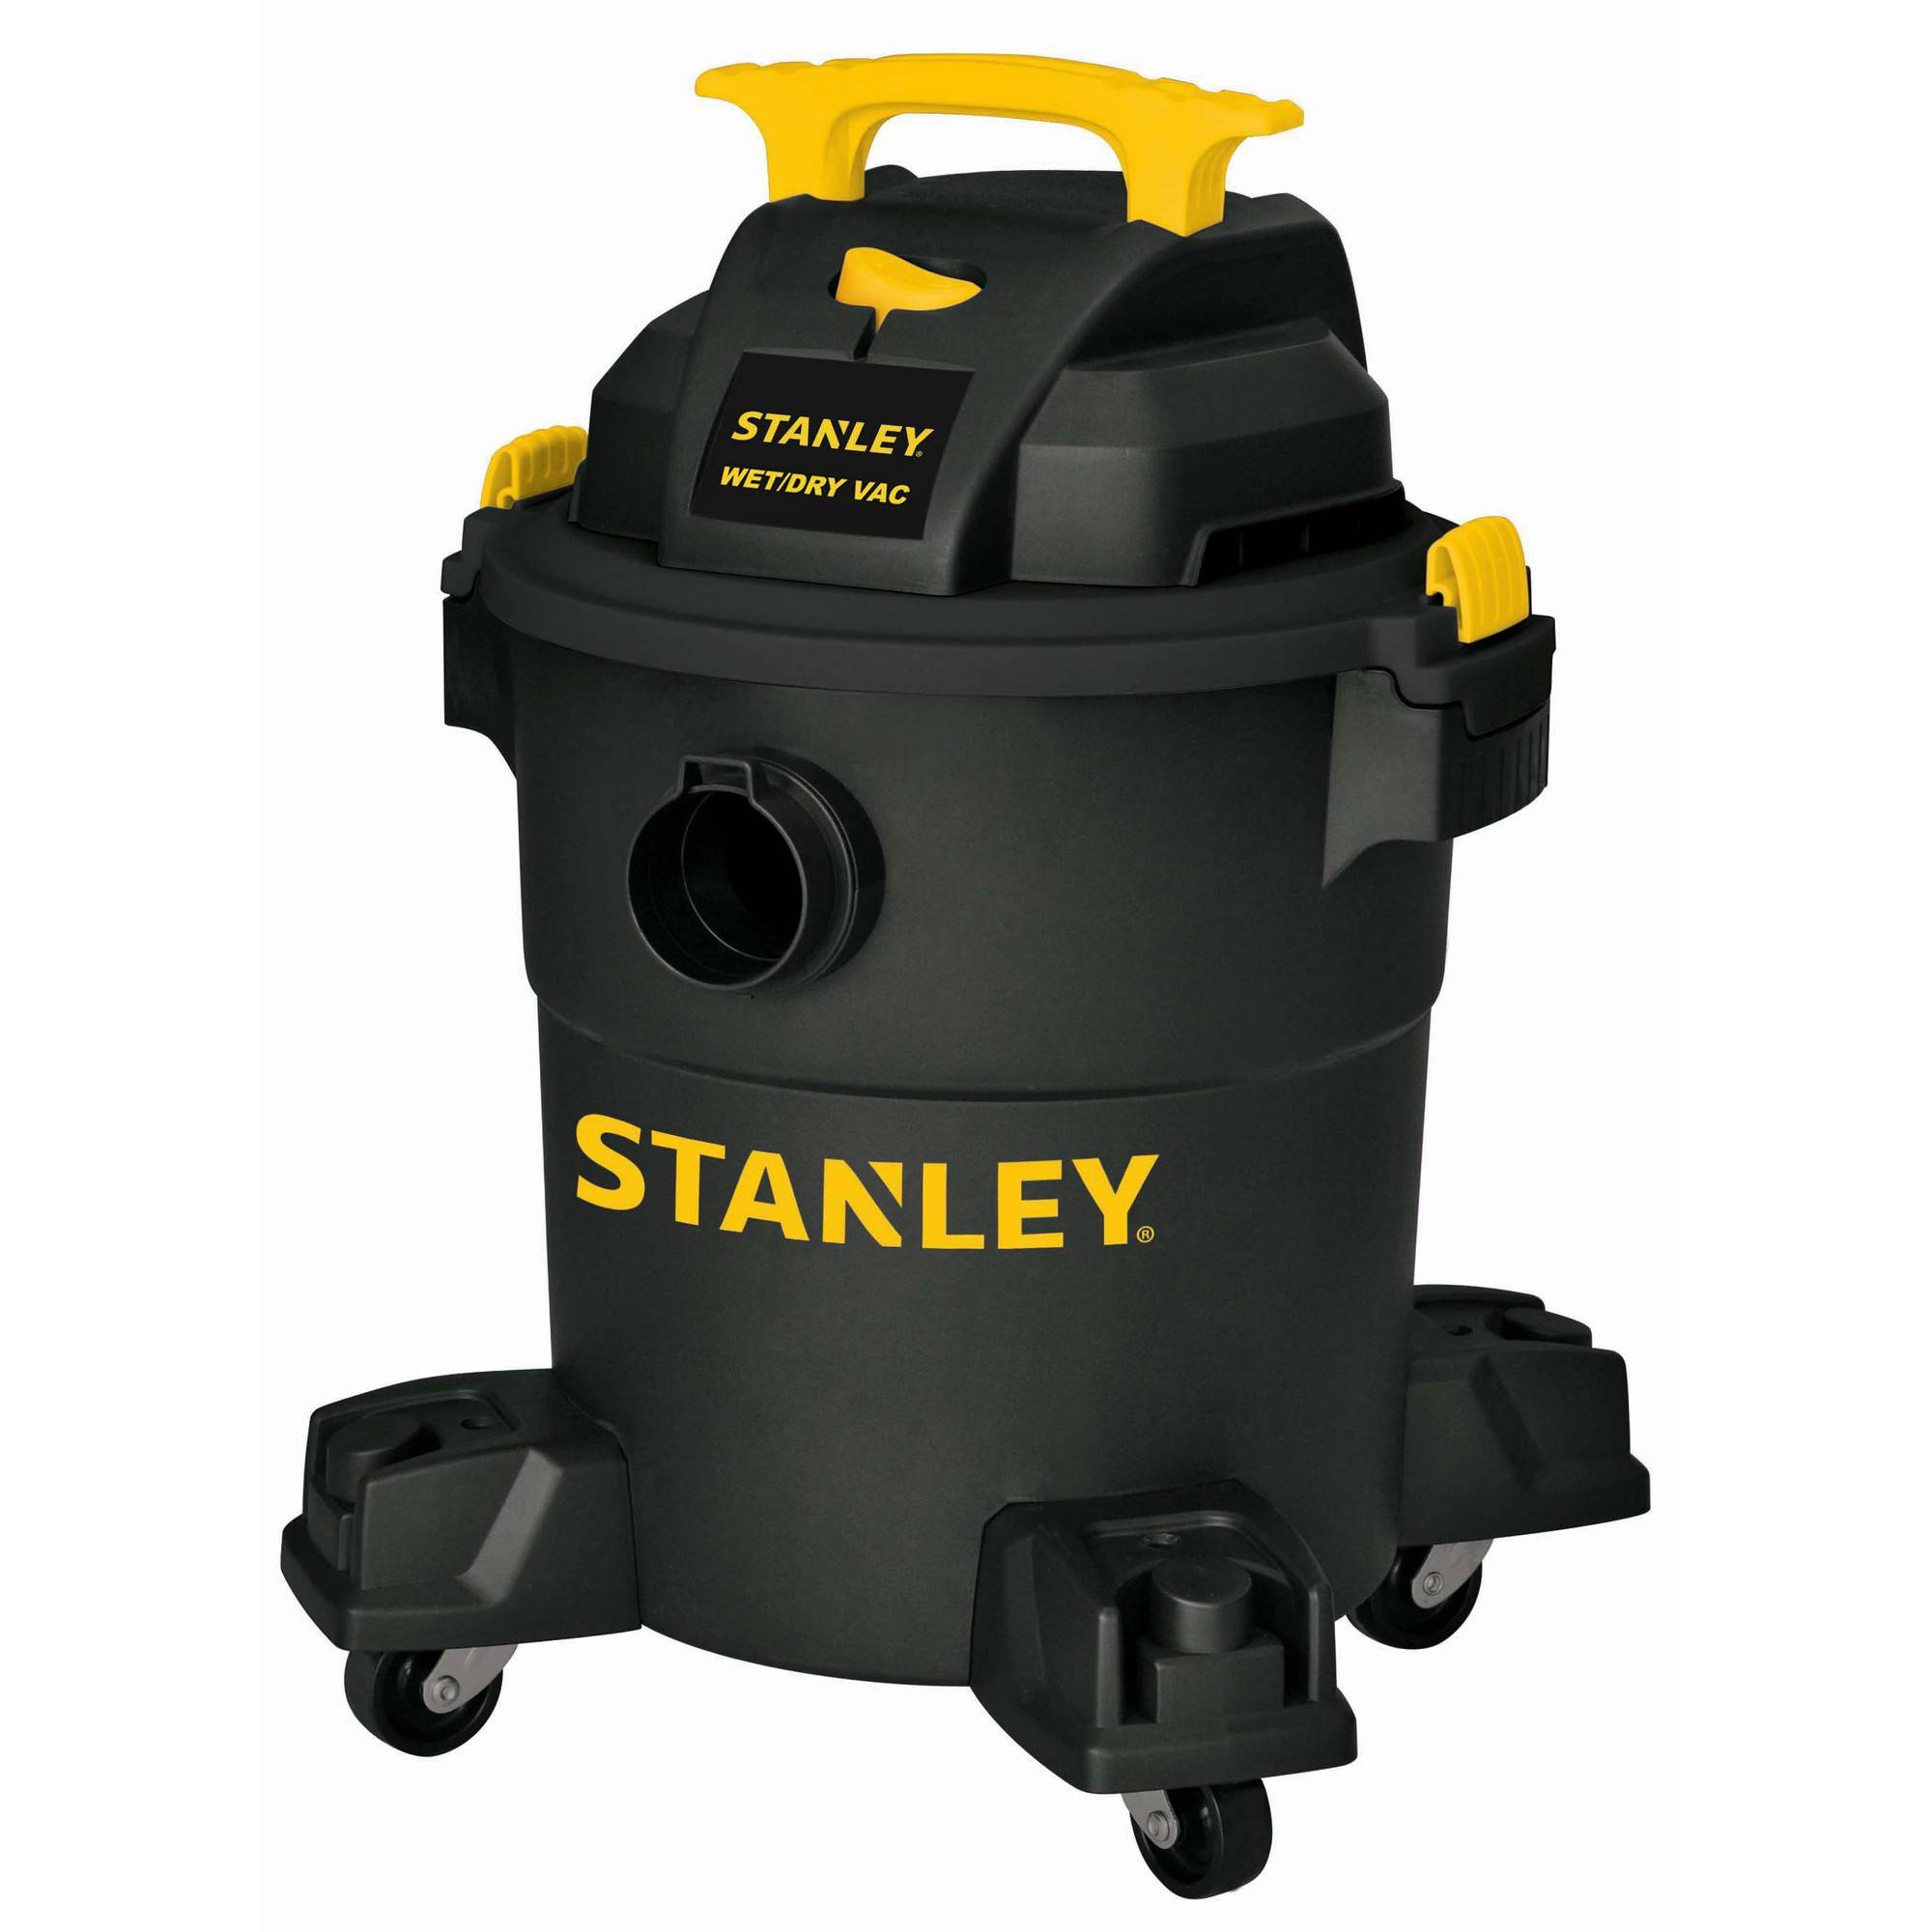 Stanley  6 gallon, 4-peak horse power, wet dry vacuum